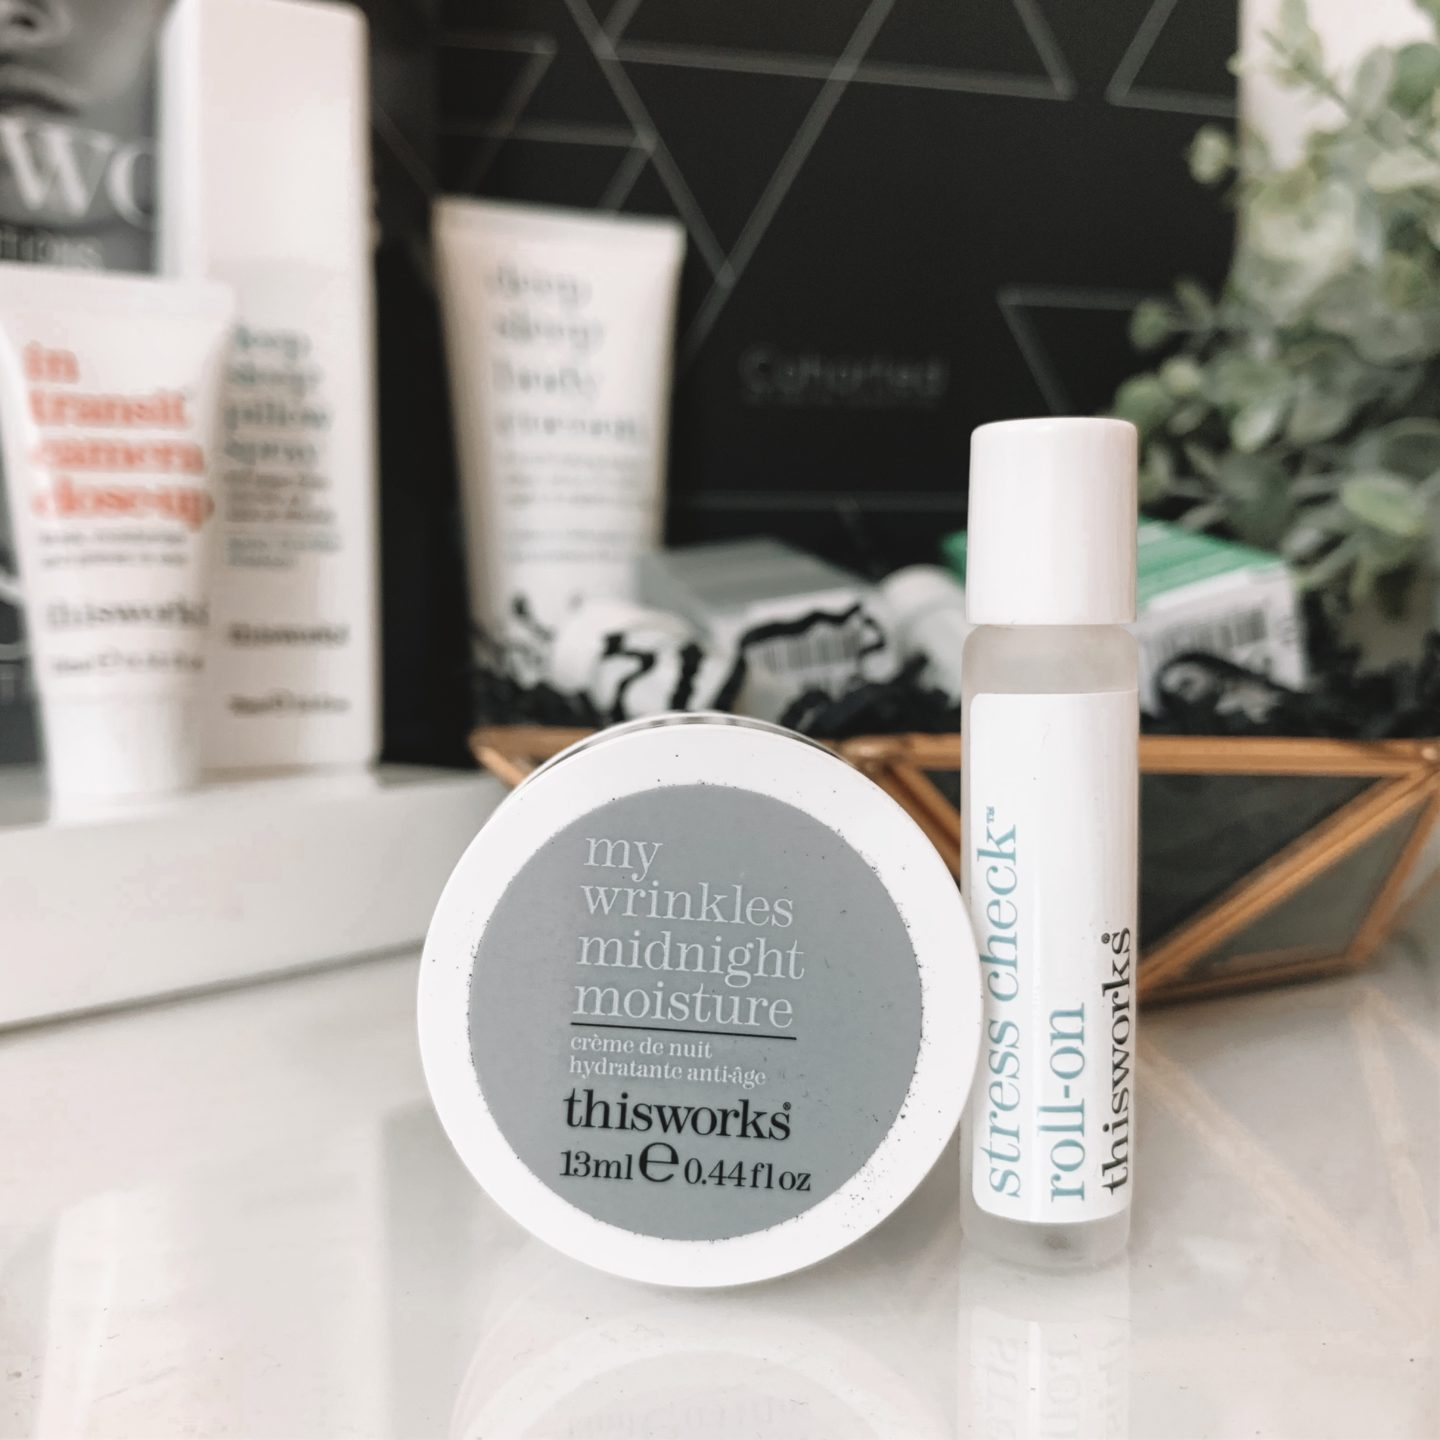 My Wrinkles Midnight Moisture - This Works Cohorted Beauty Box June 2020 - Miss Boux